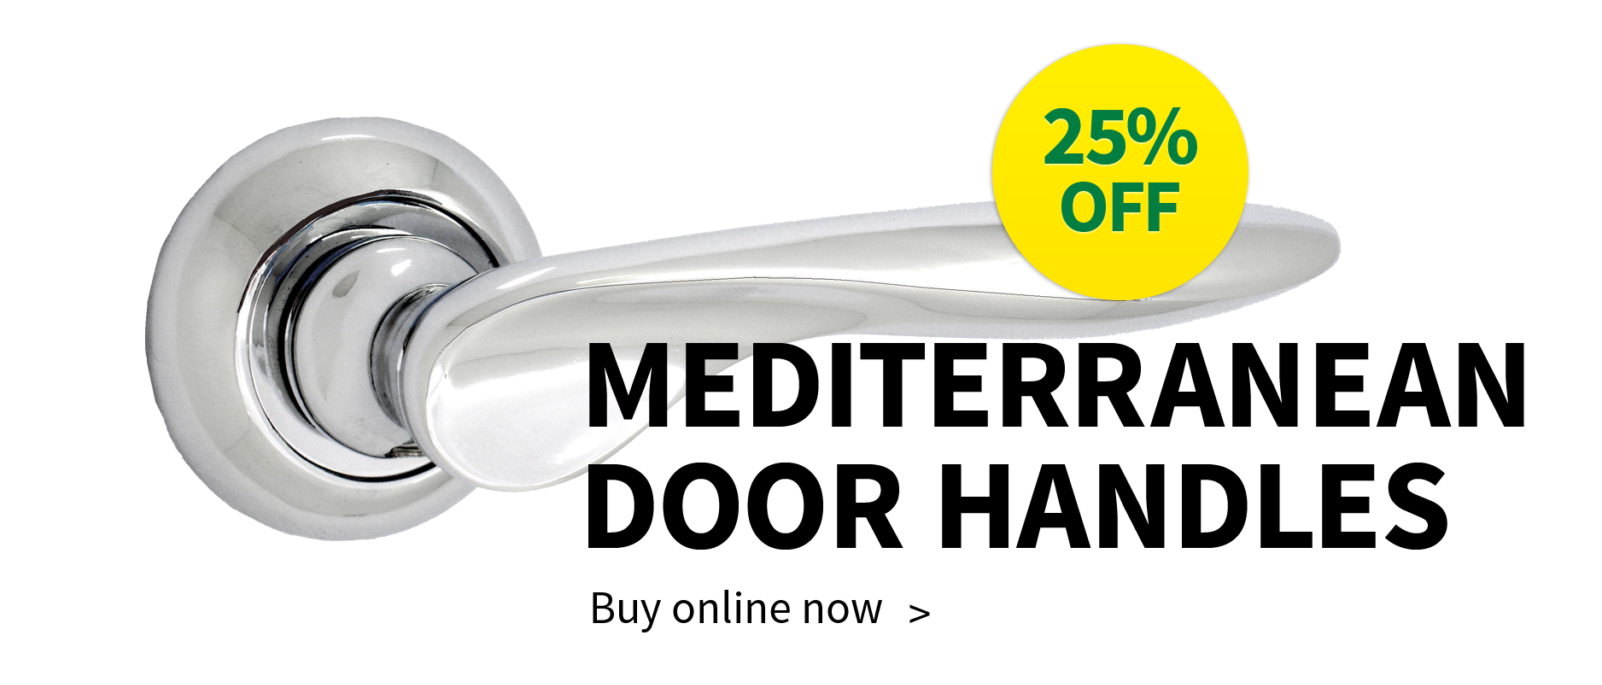 08 Mediterranean Door Handle